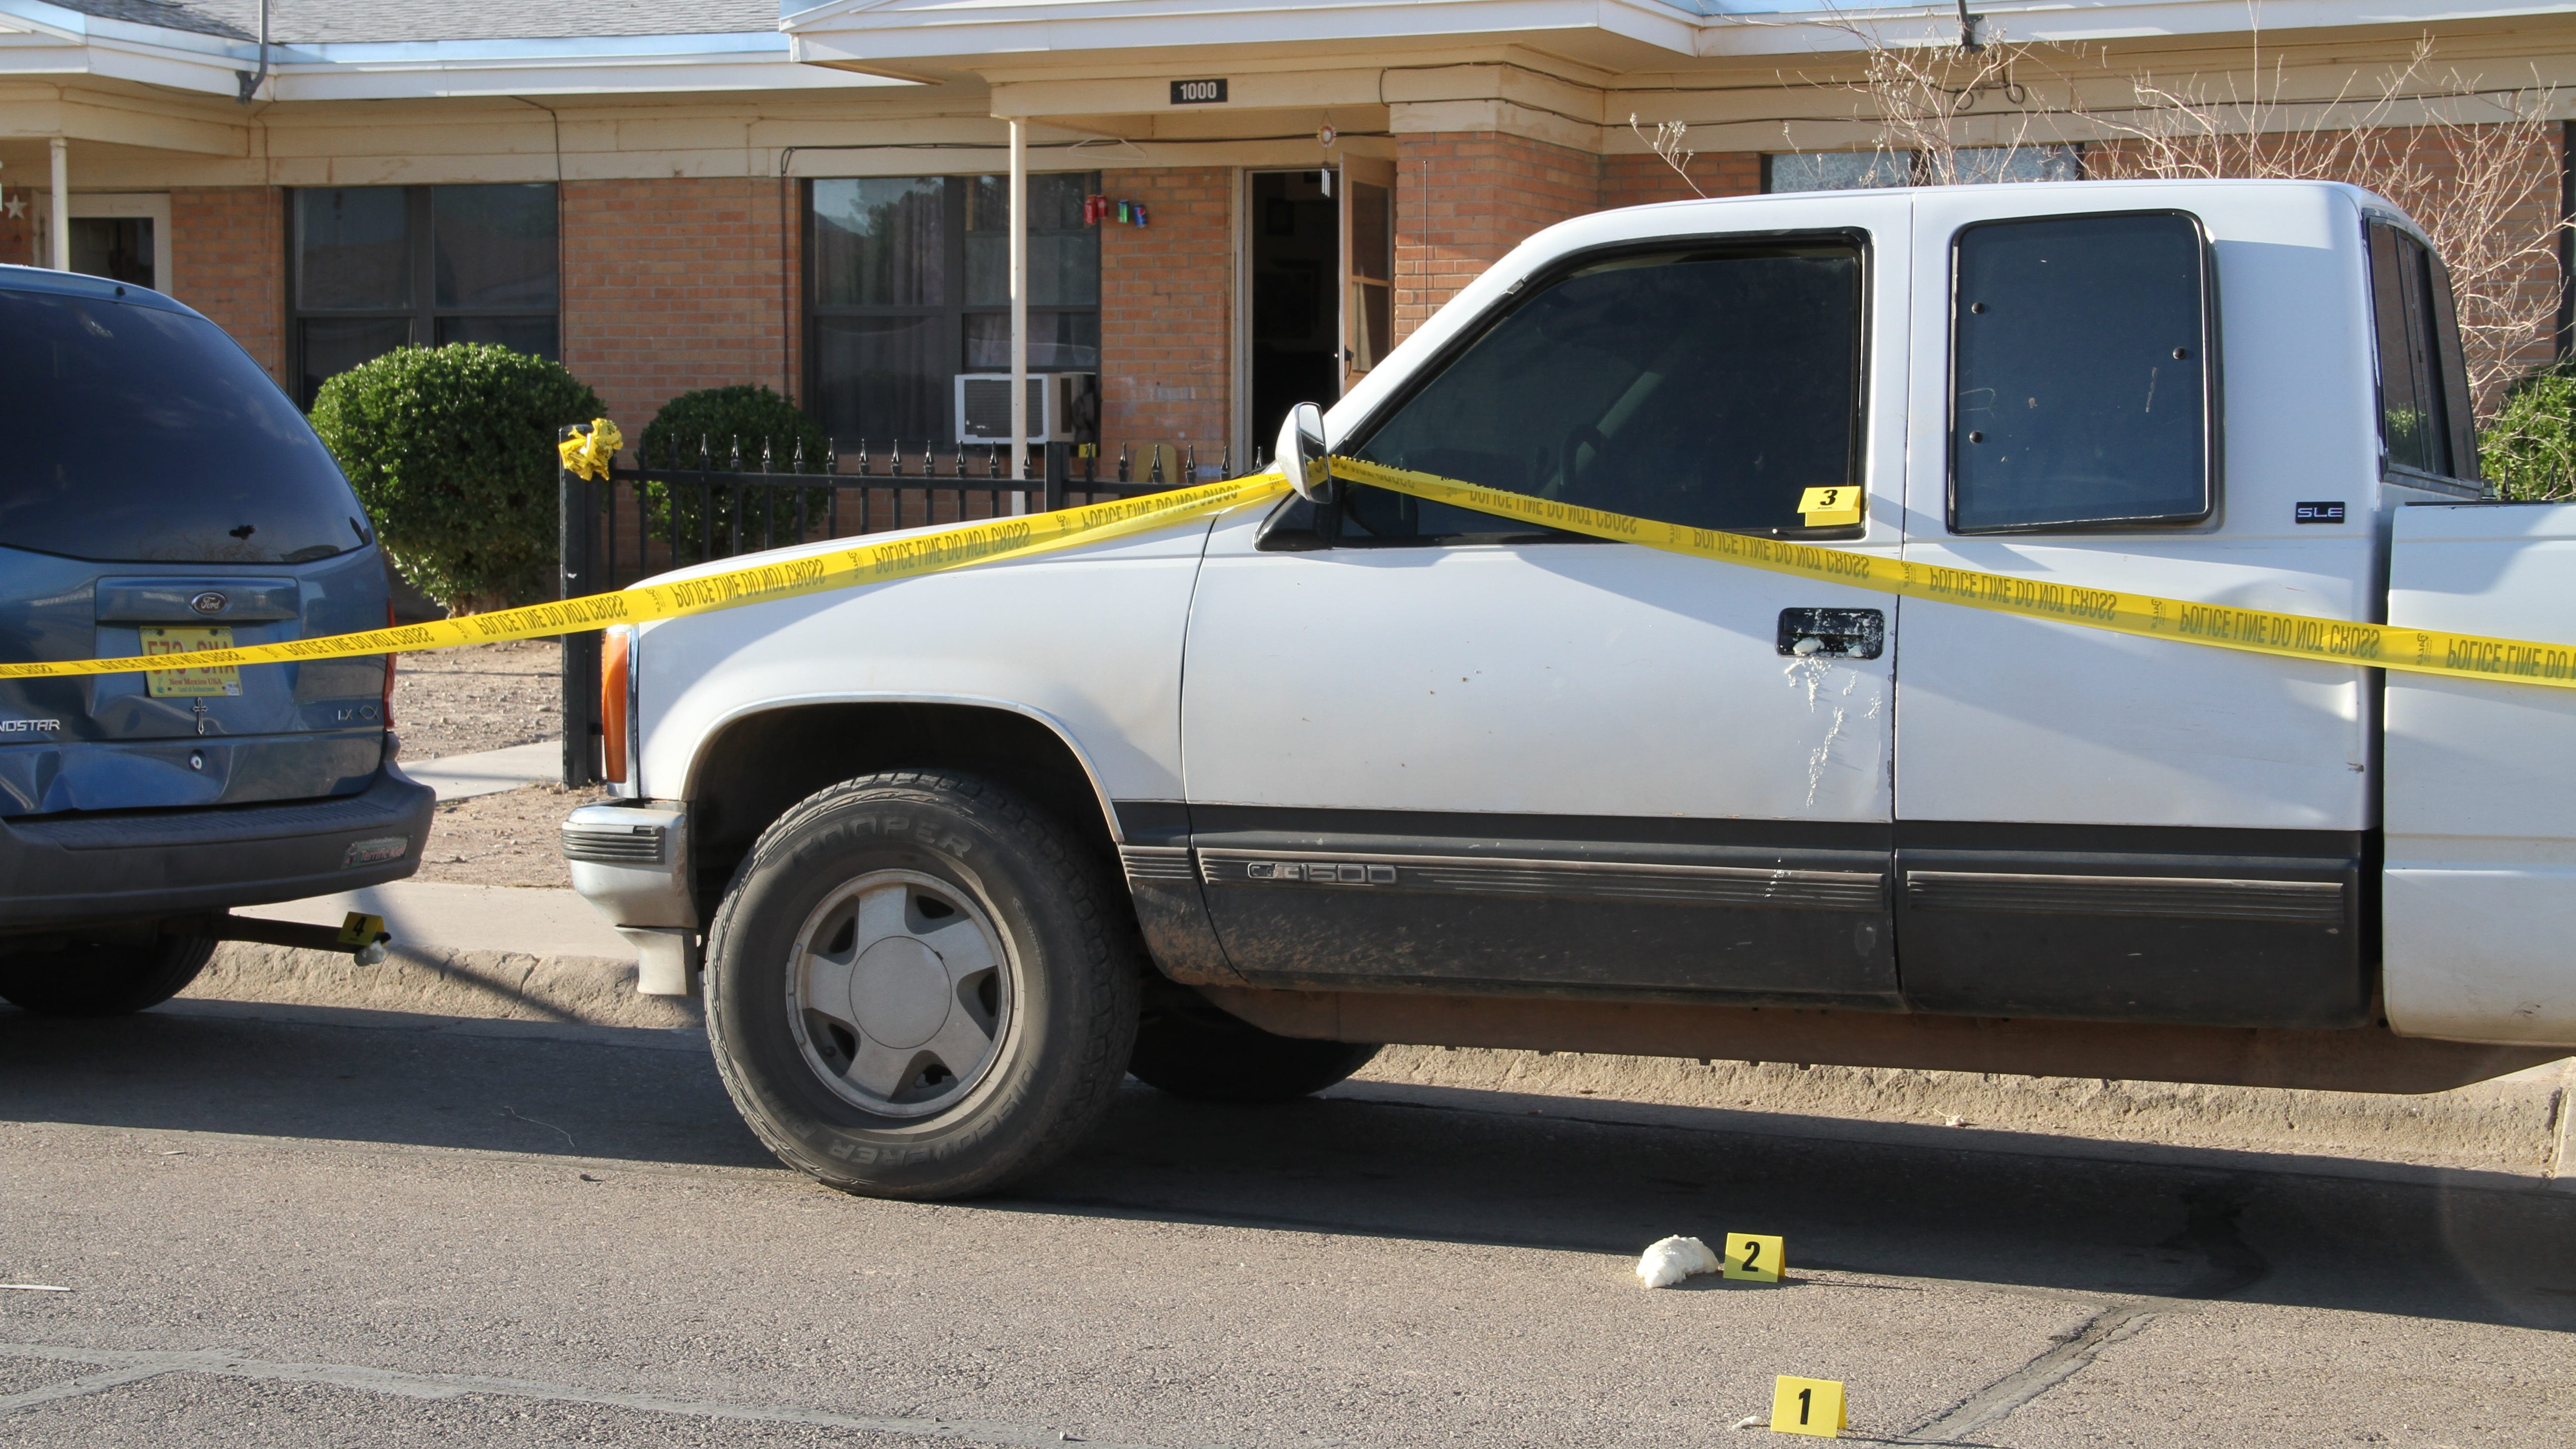 Alamogordo Police Department detectives charged a 36-year-old suspect in the fatal shooting at 1000 Seventh Ave. Friday.